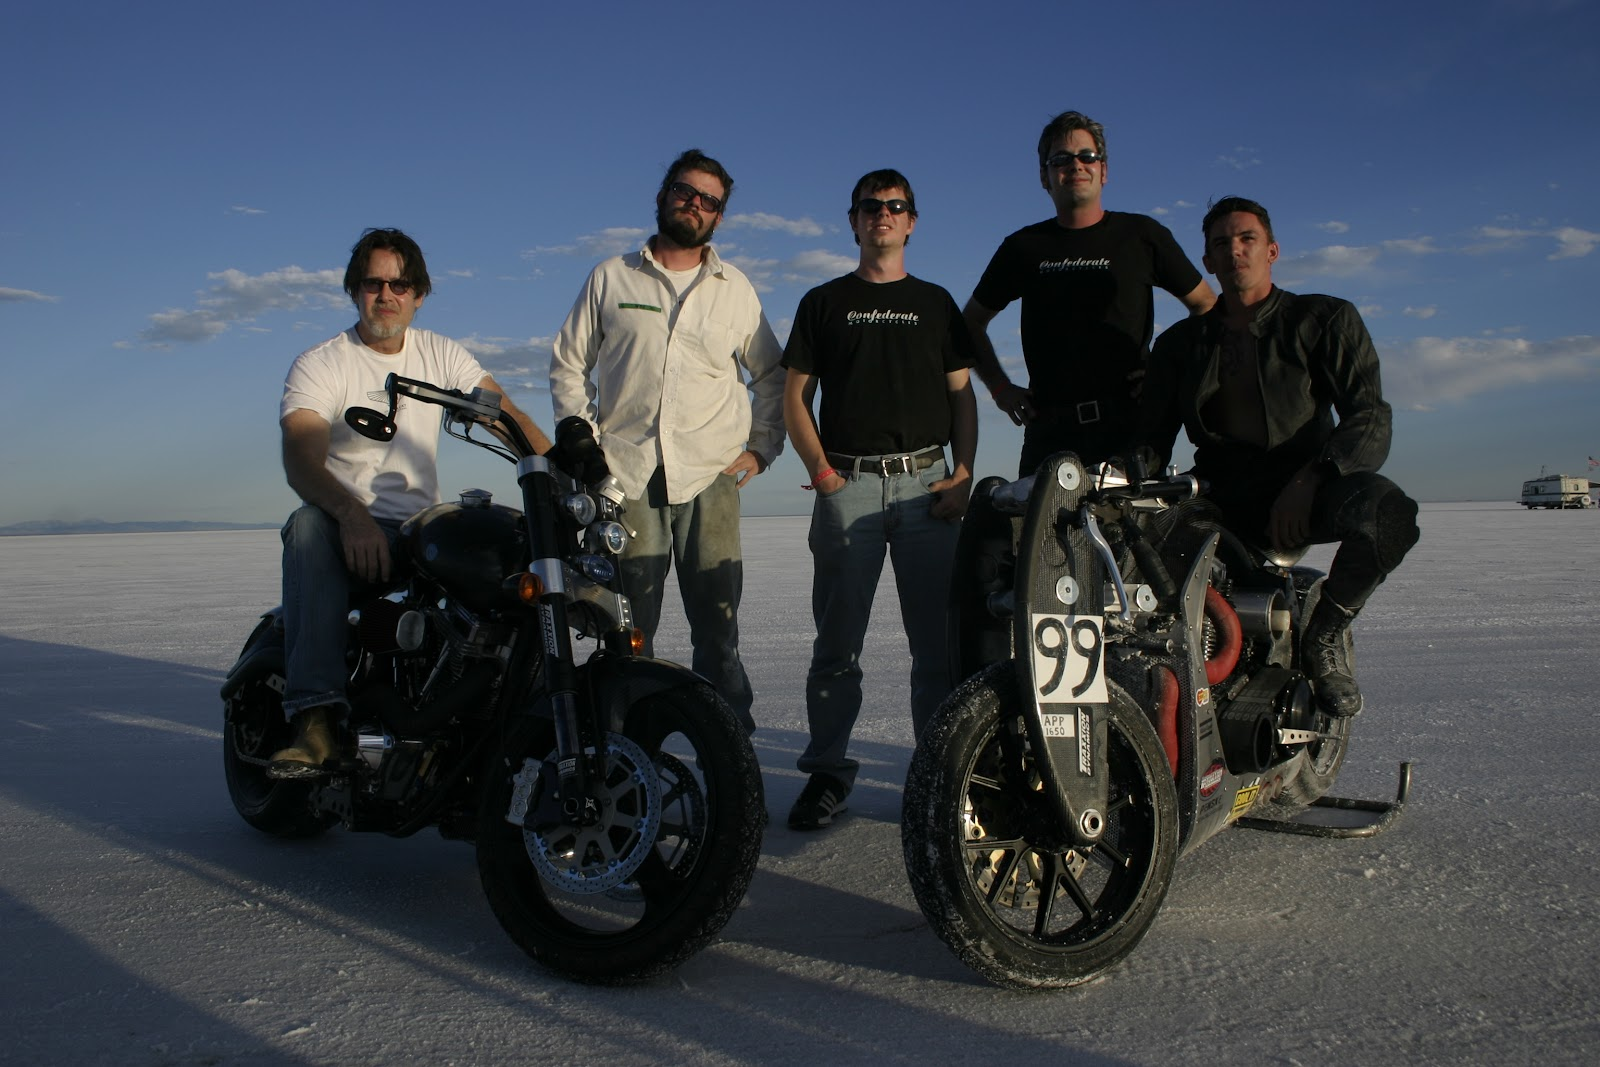 Confederate team at the BUB speed trials on the Bonneville Salt Flats, August 2004